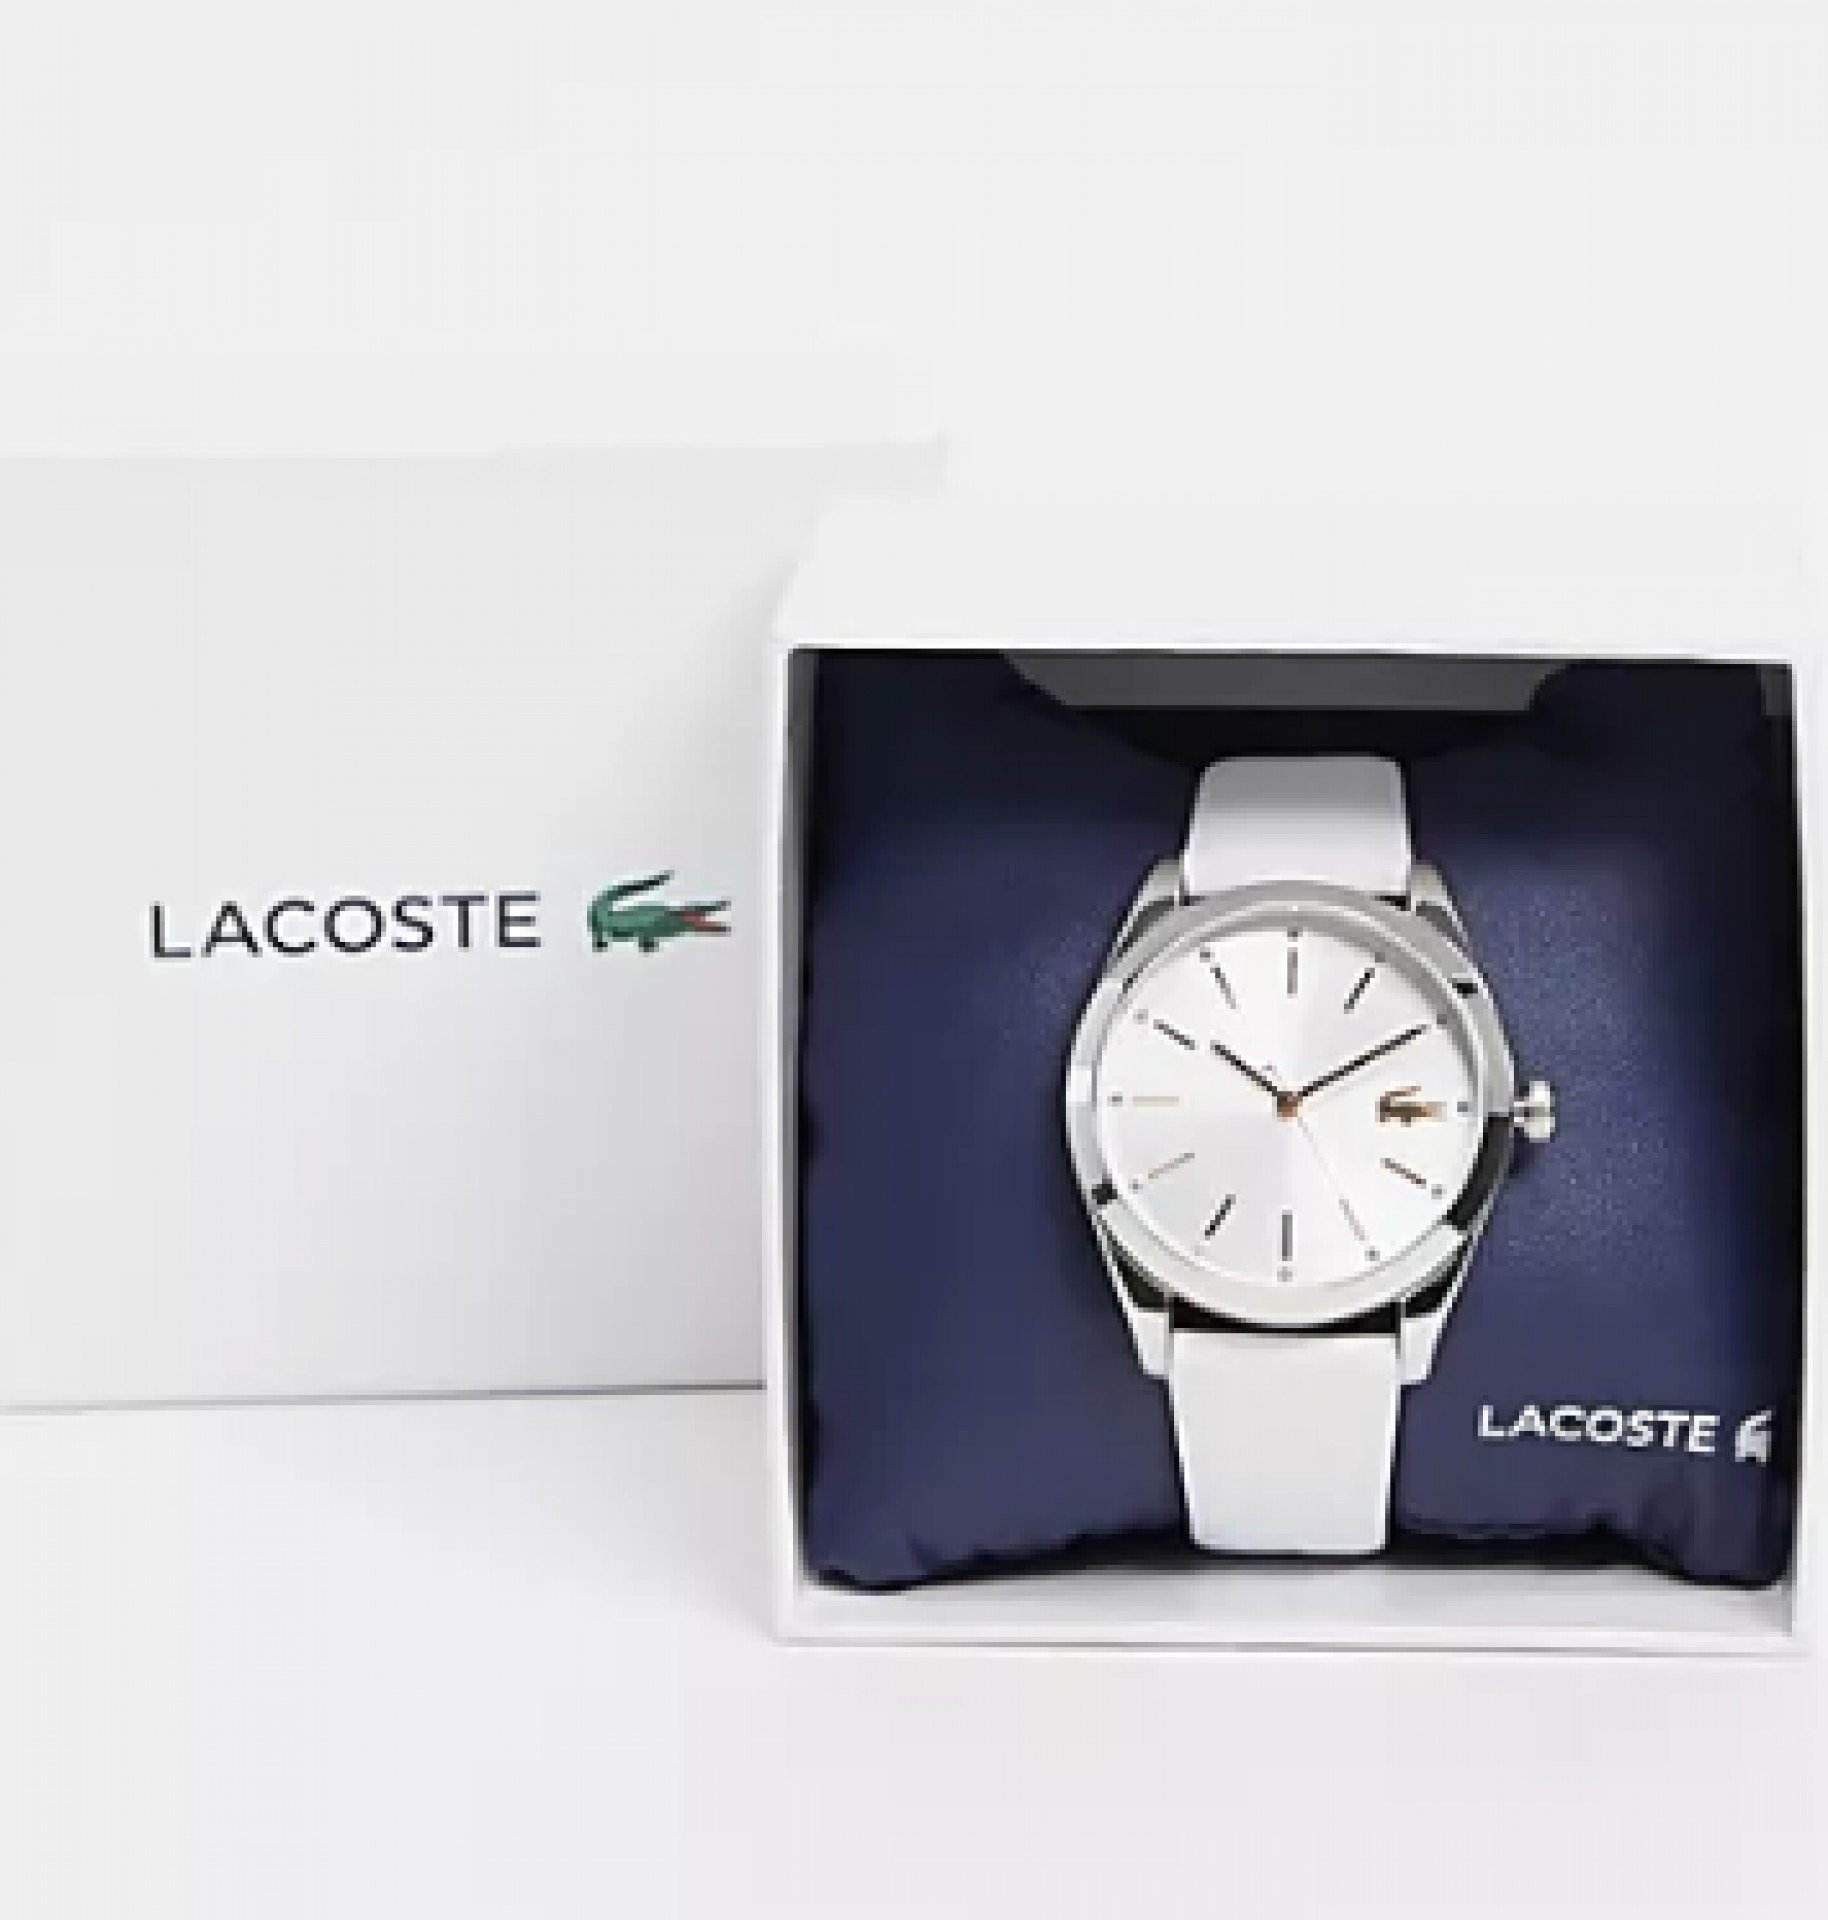 Lacoste parisienne watch with white strap